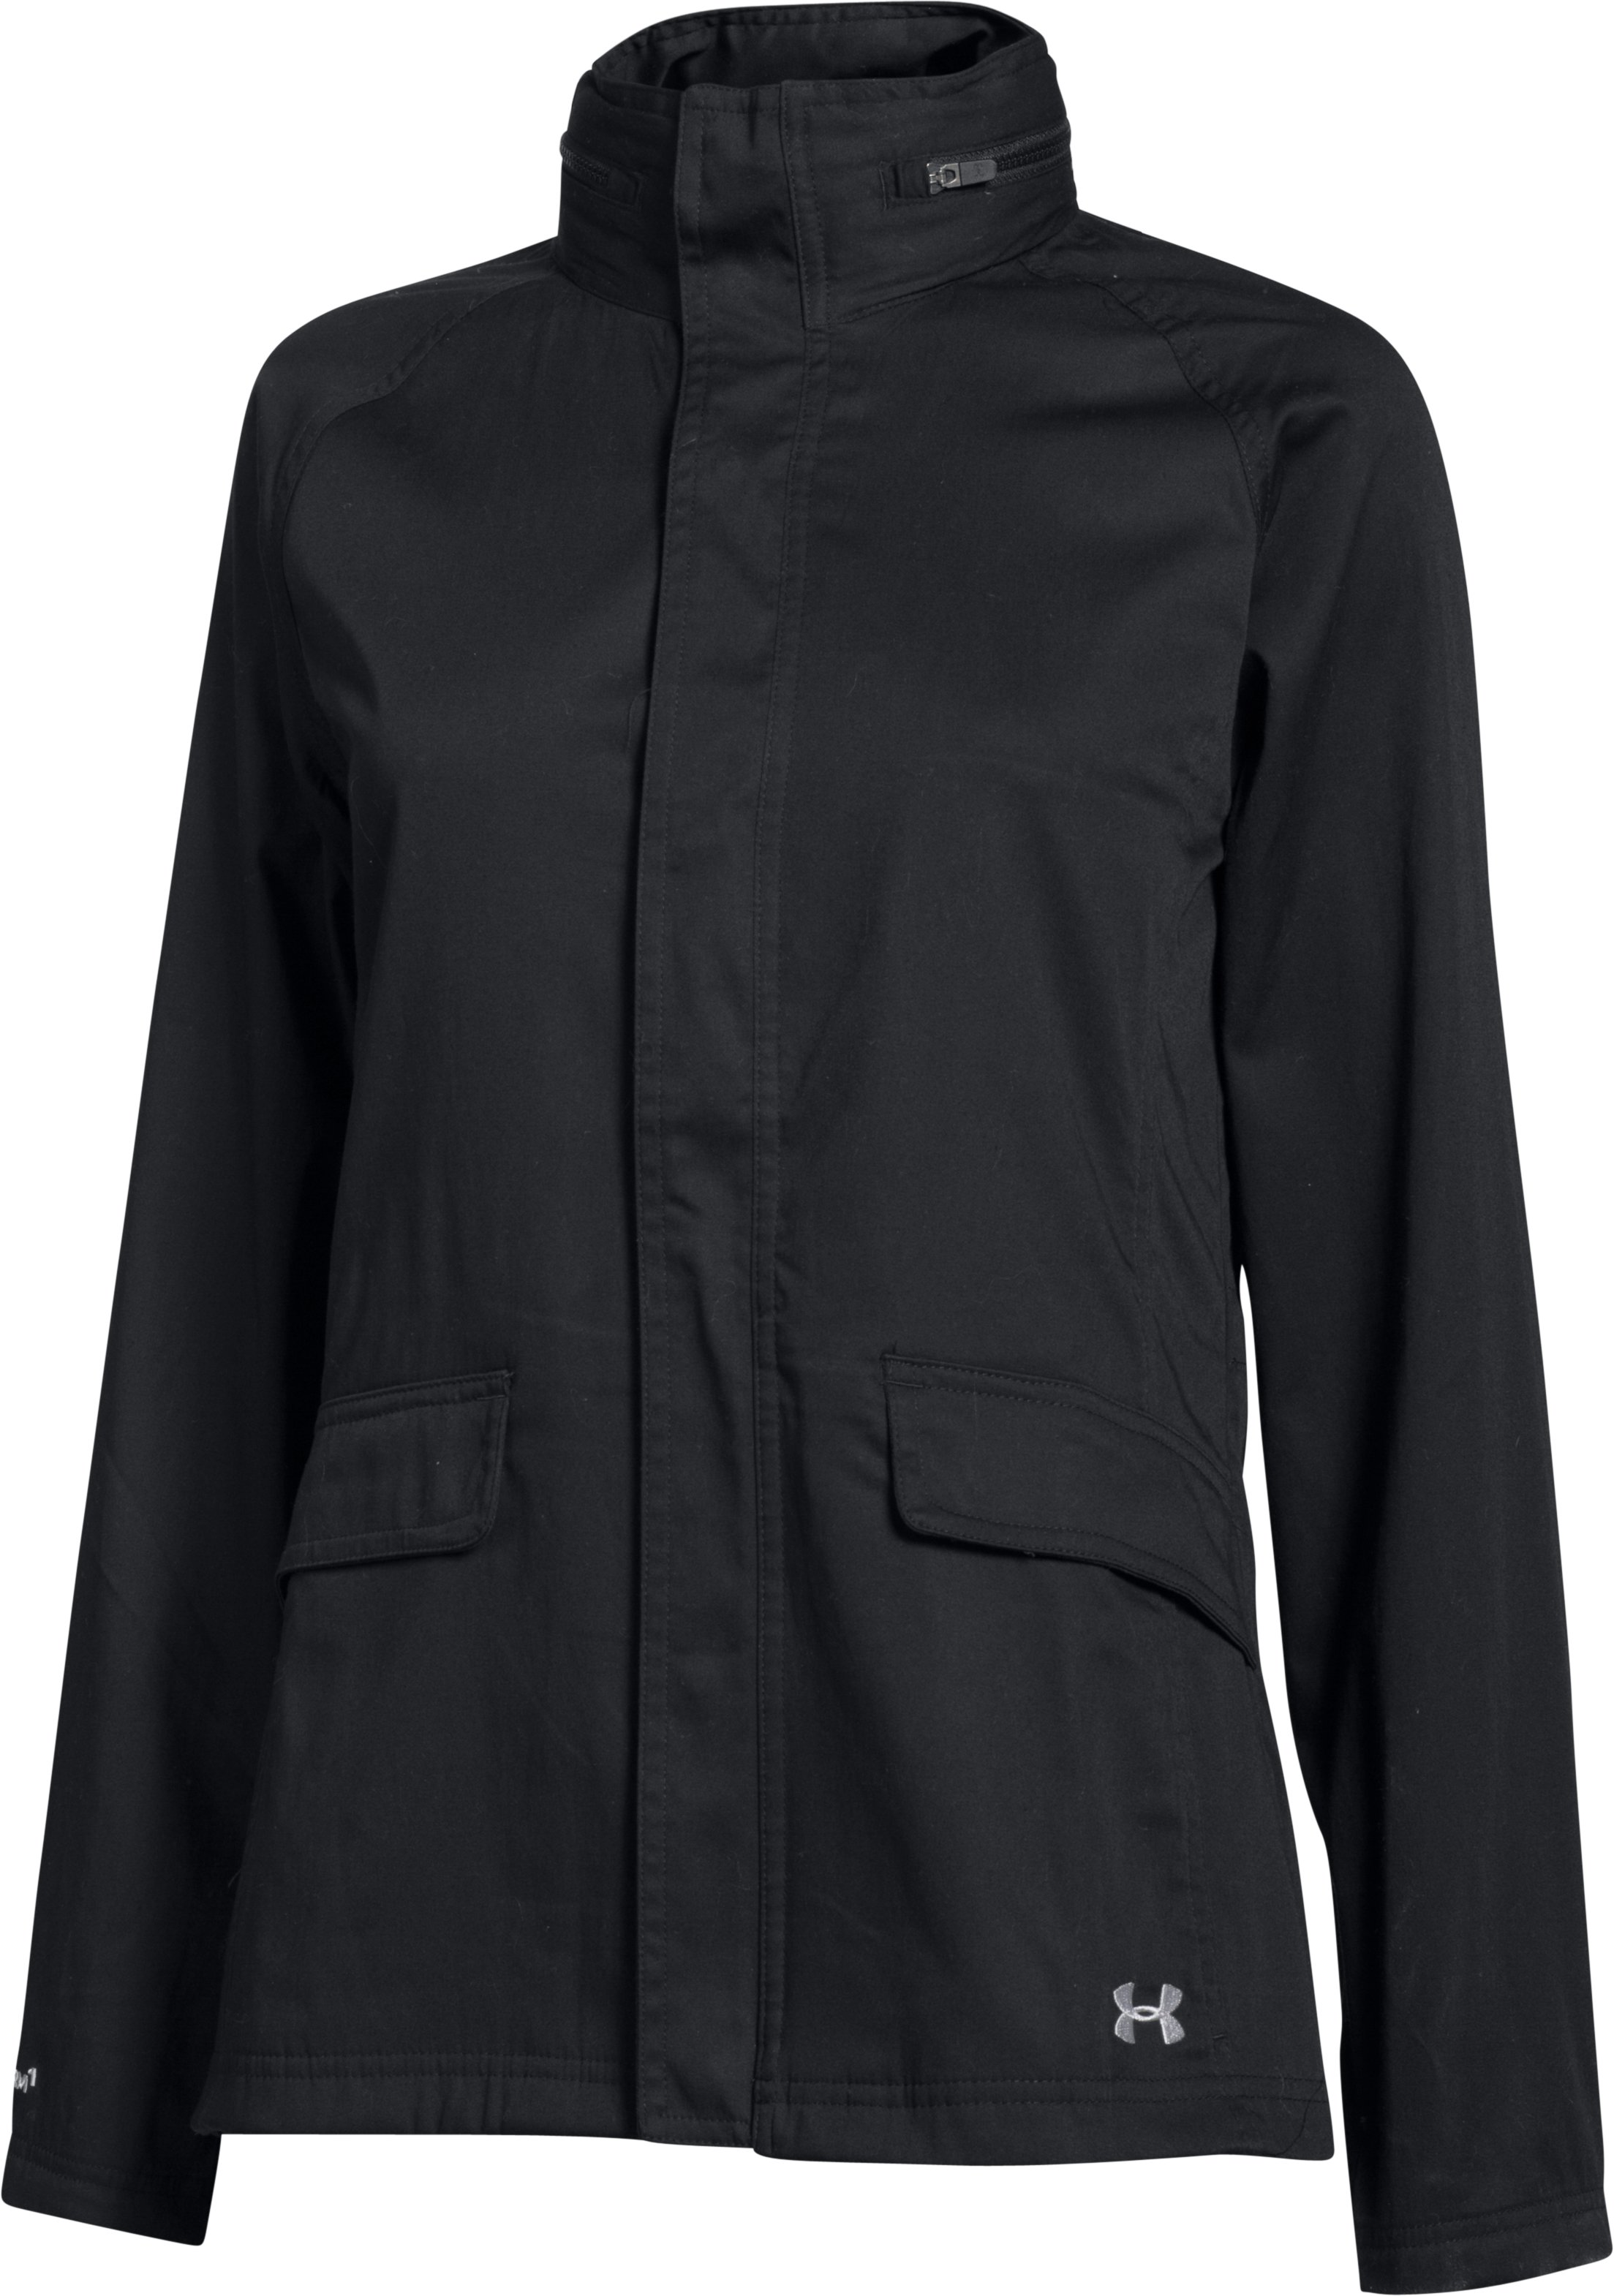 Women's UA Malabar Jacket, Black